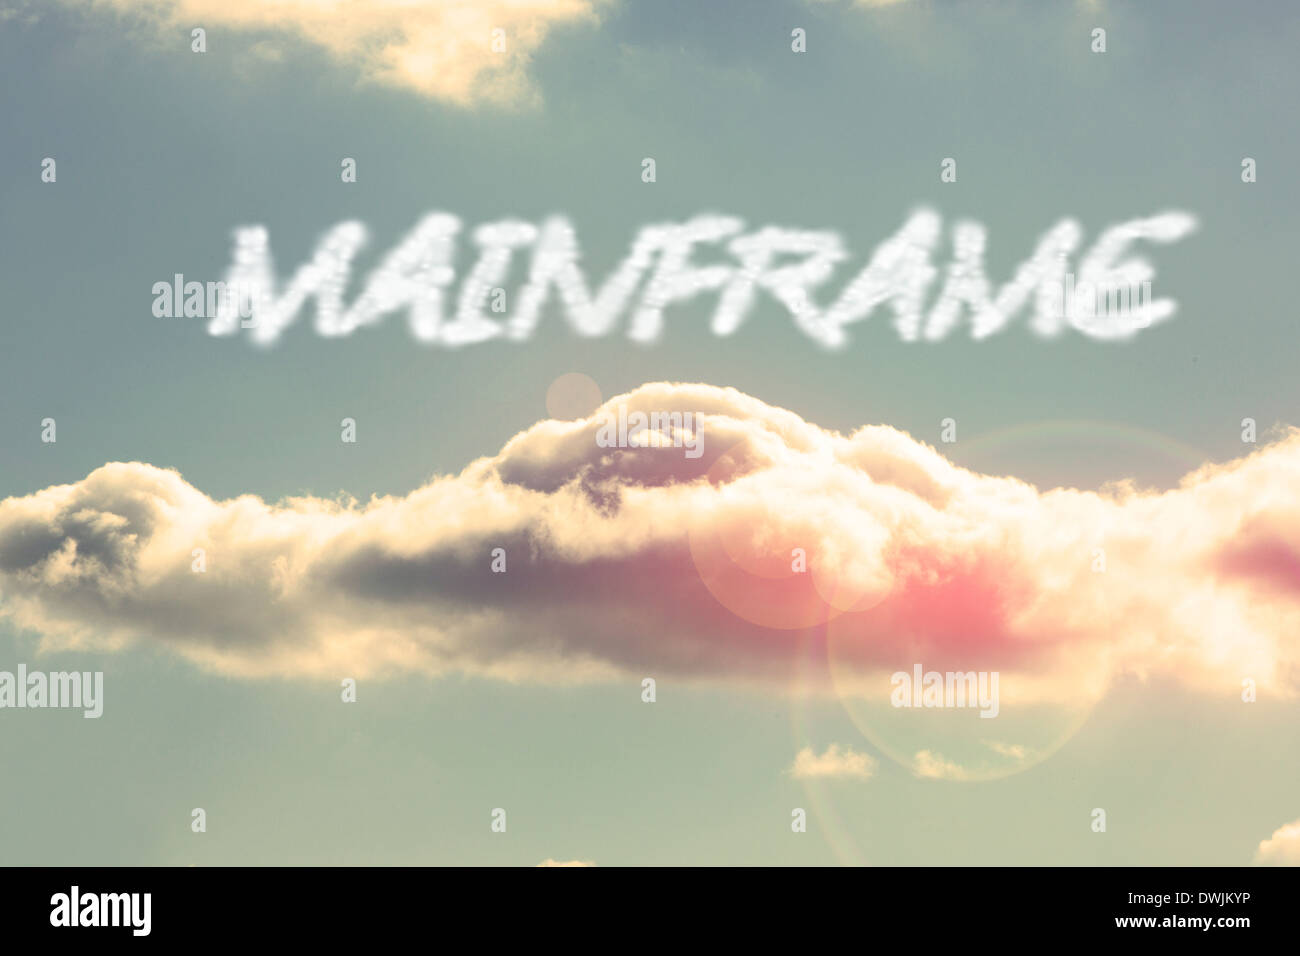 Mainframe against bright blue sky with cloud - Stock Image